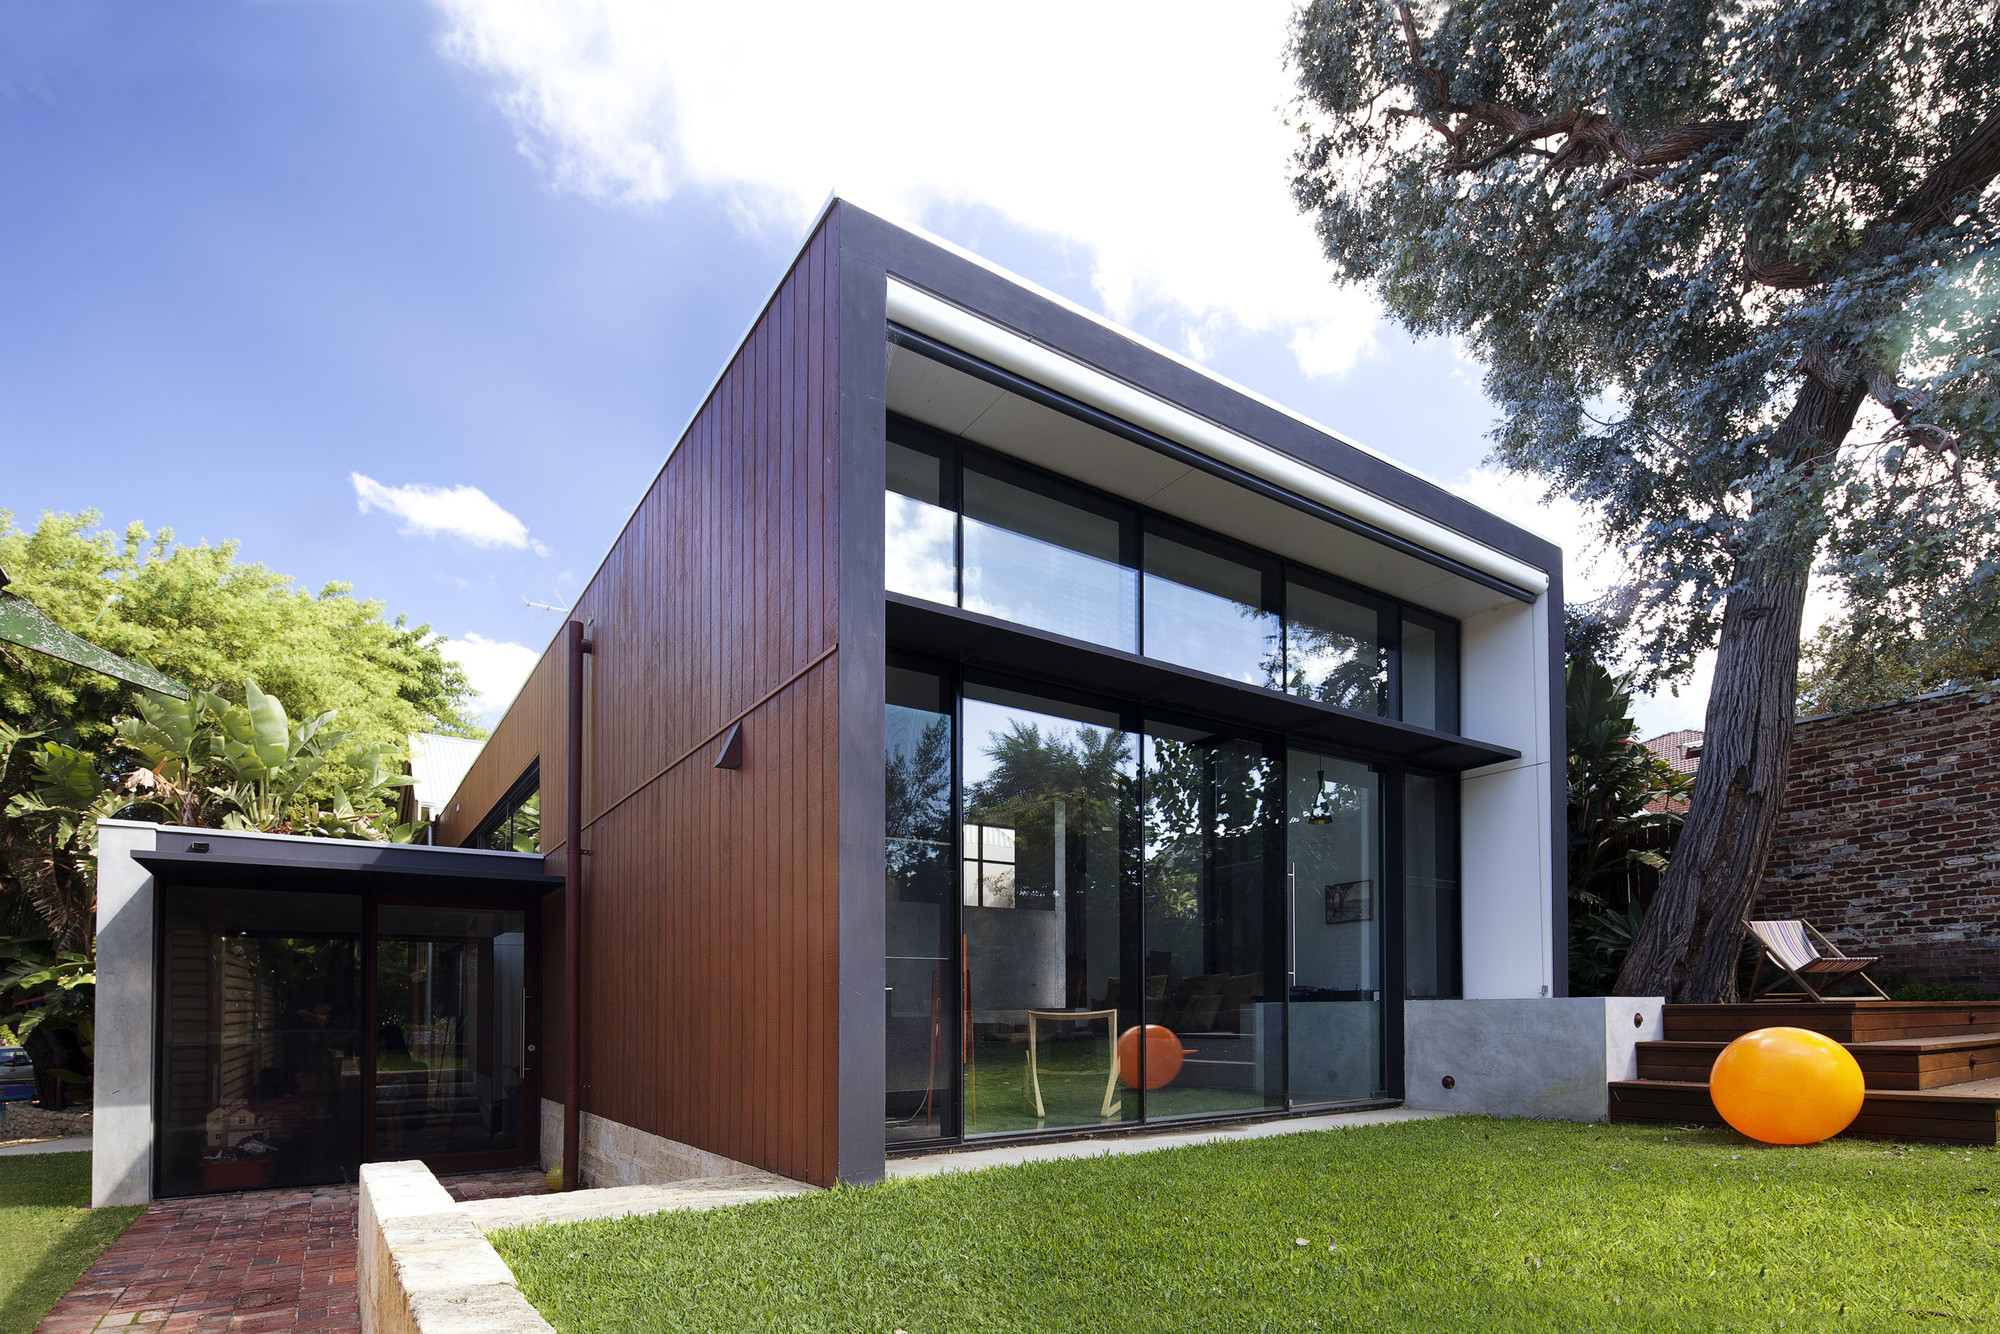 Maylands Additions / Jonathan Lake Architects, © Robert Frith